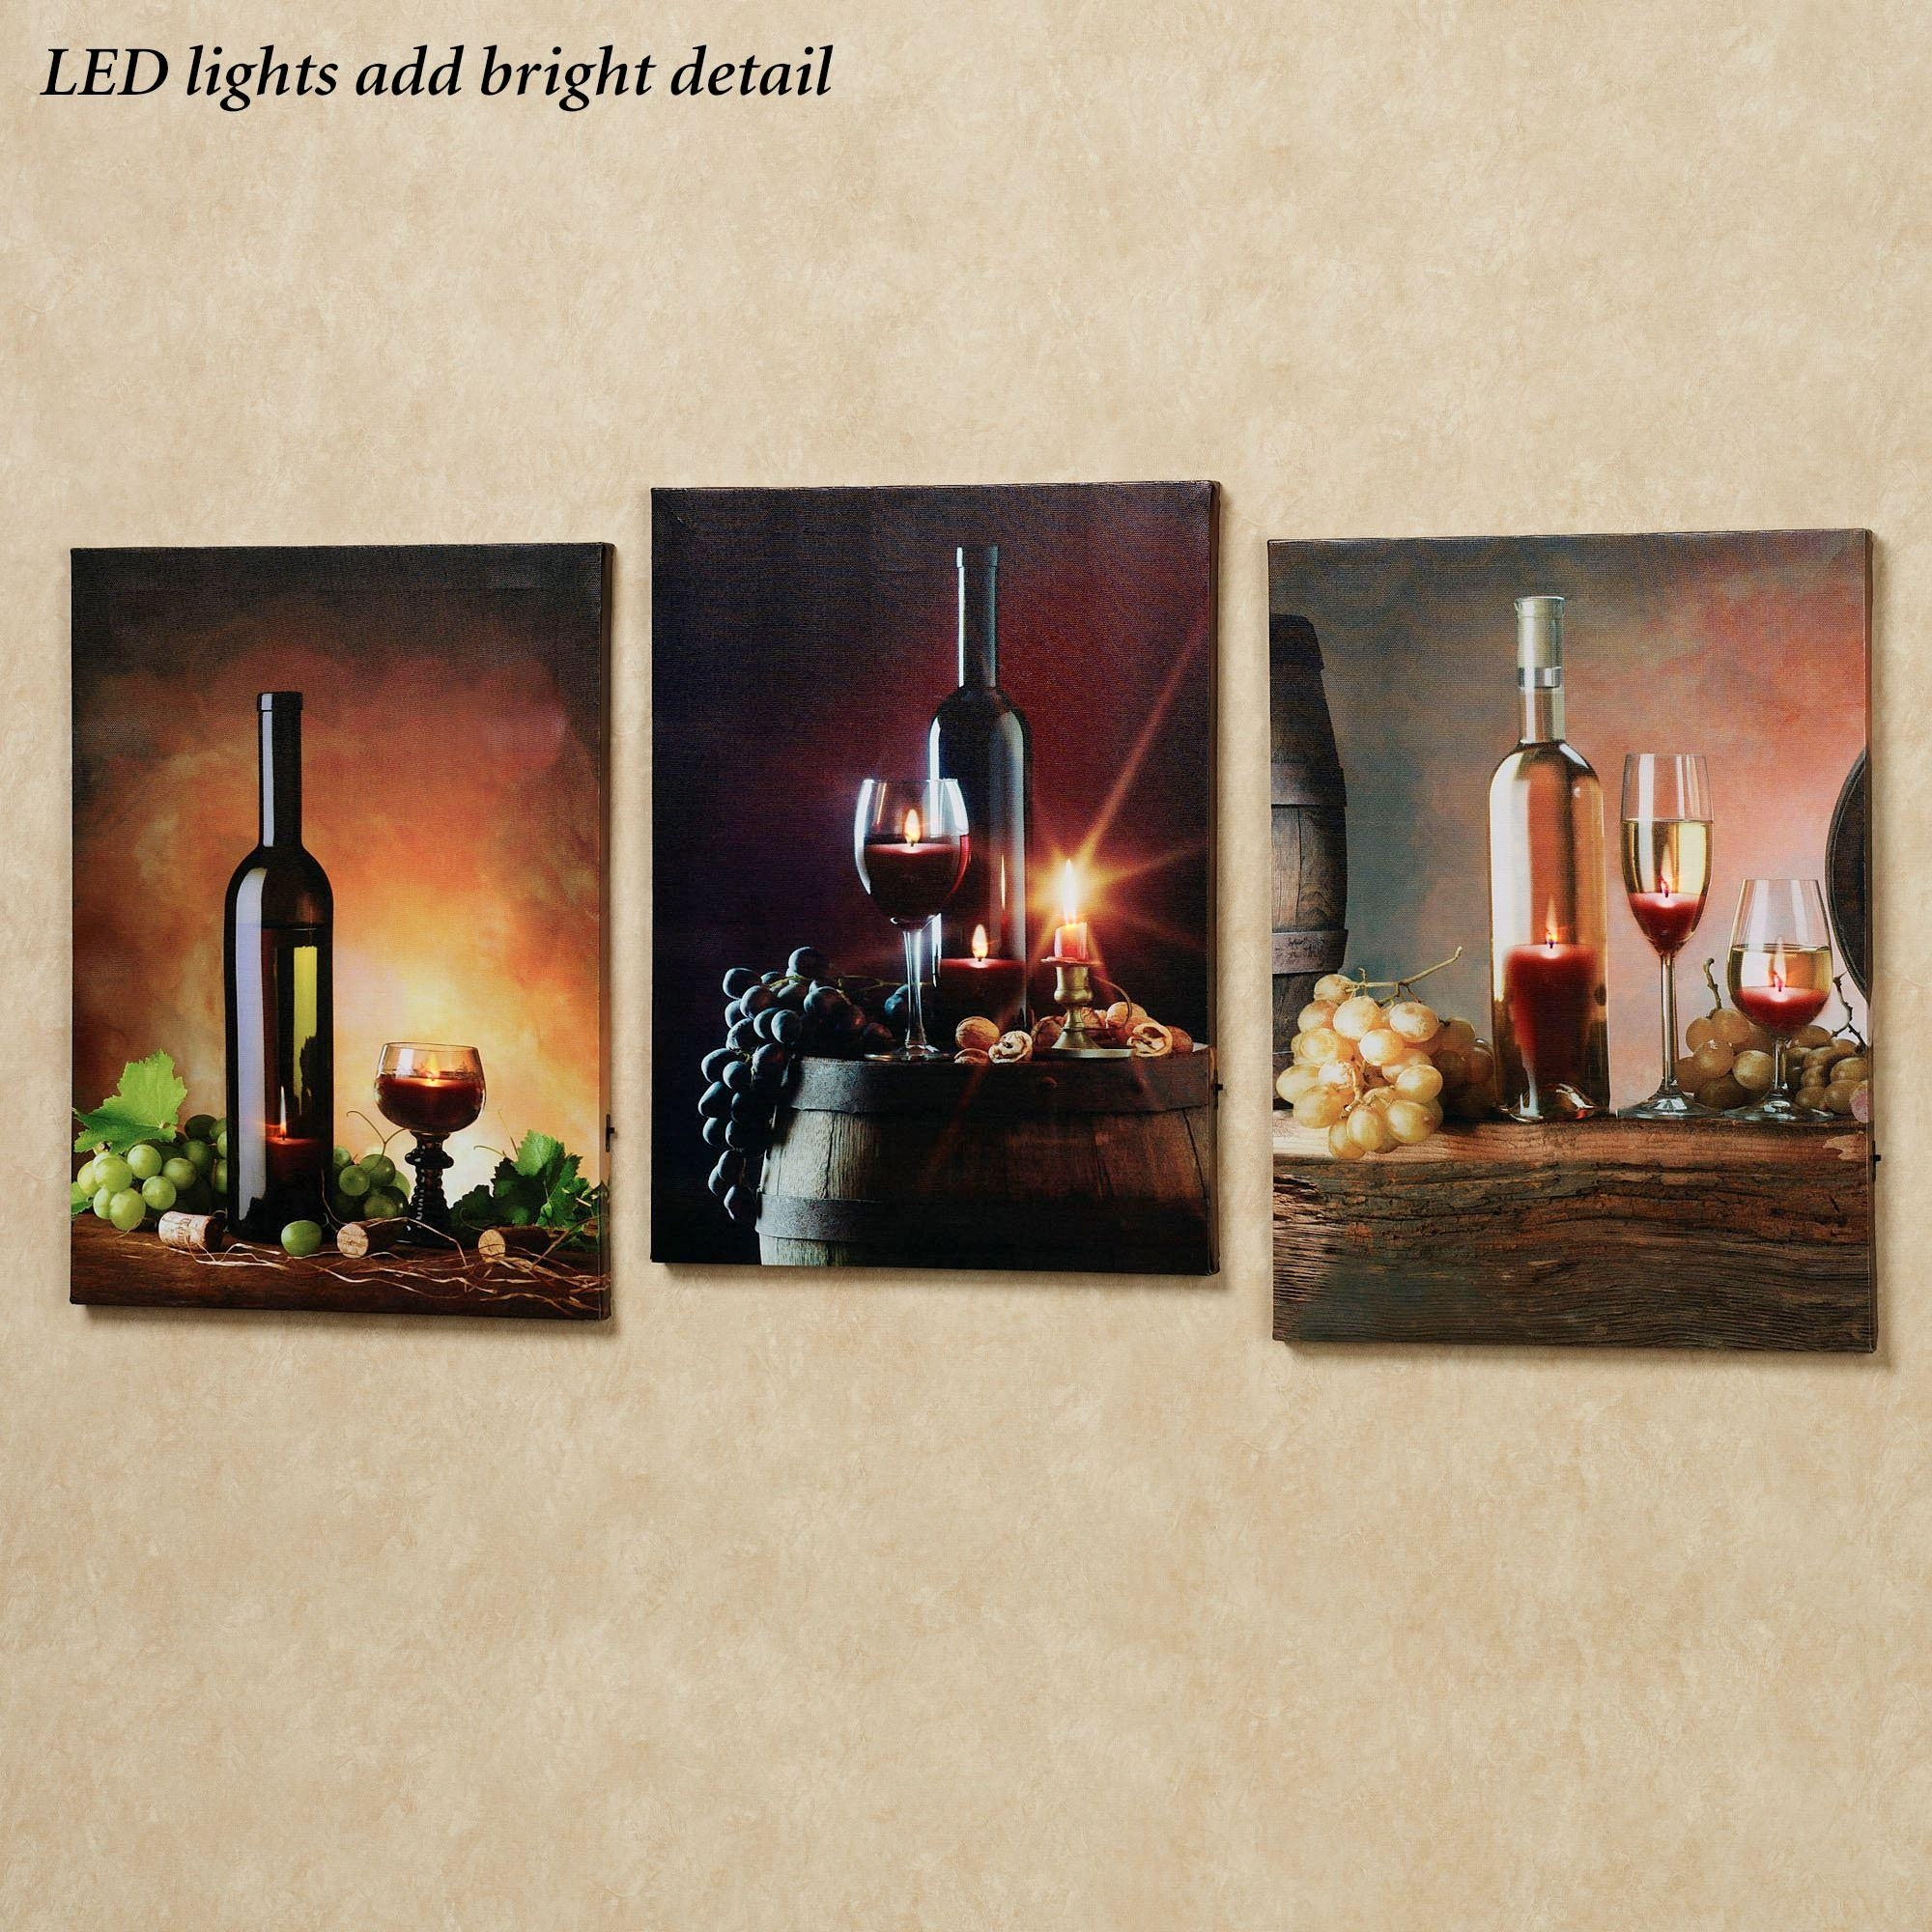 Wall Art Designs: Top Ideas About Wine Wall Art, Wine Decor Tuscan Throughout Wine Theme Wall Art (Image 17 of 20)